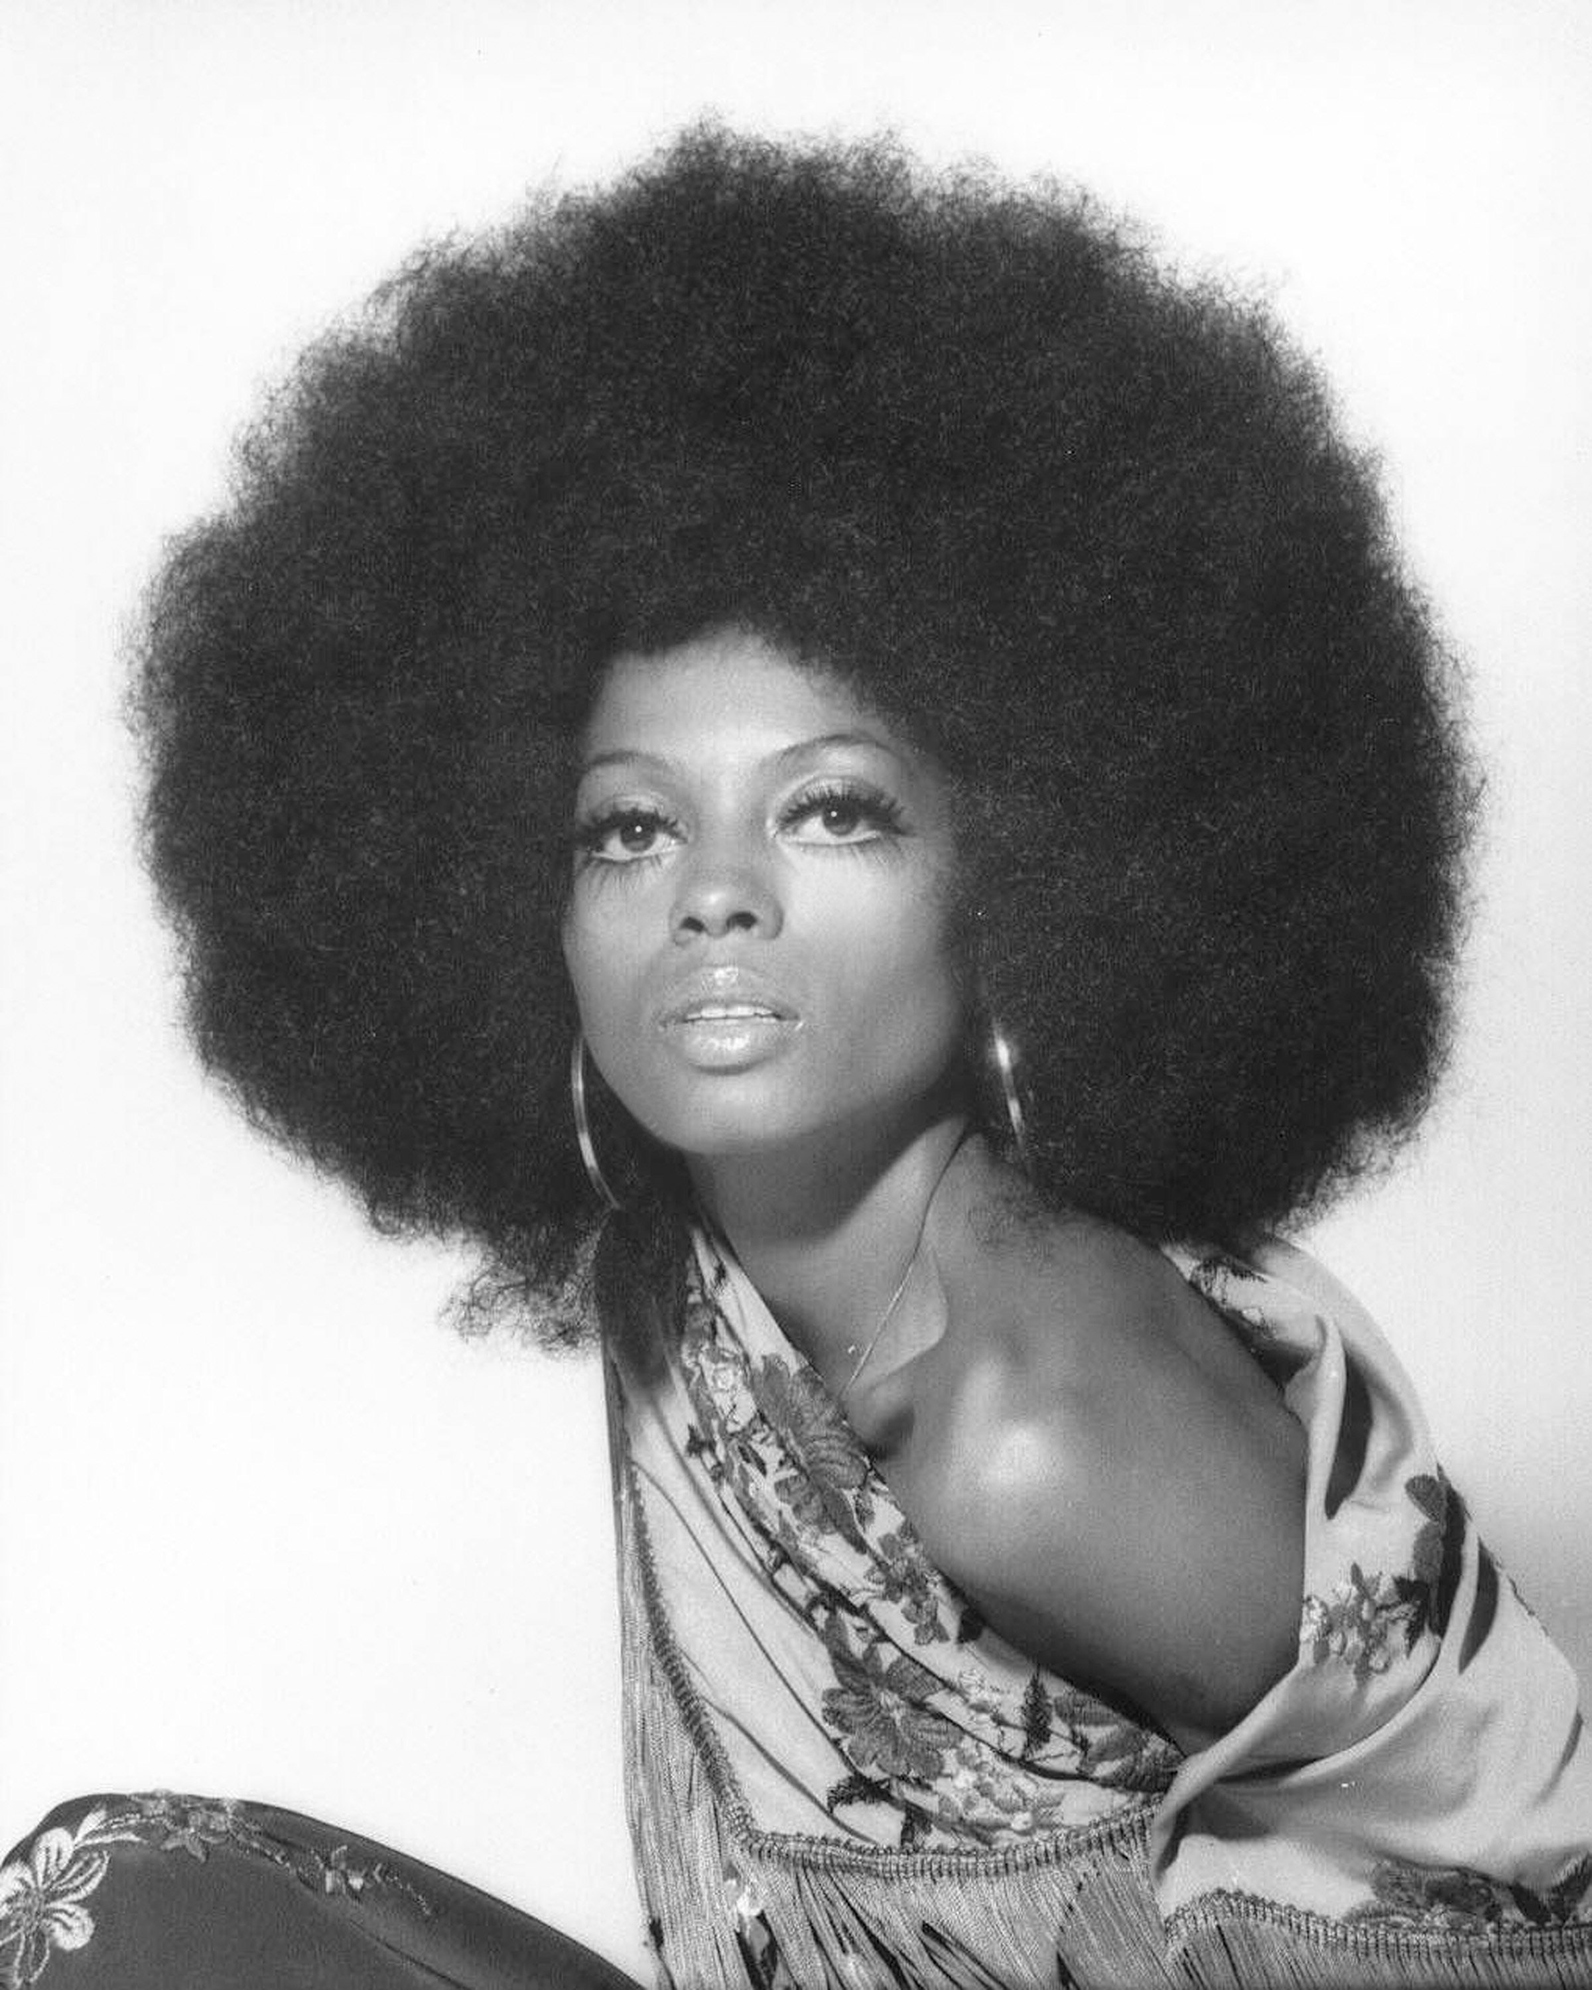 Singer Diana Ross poses for a portrait session on July 16, 1975 in Los Angeles. California